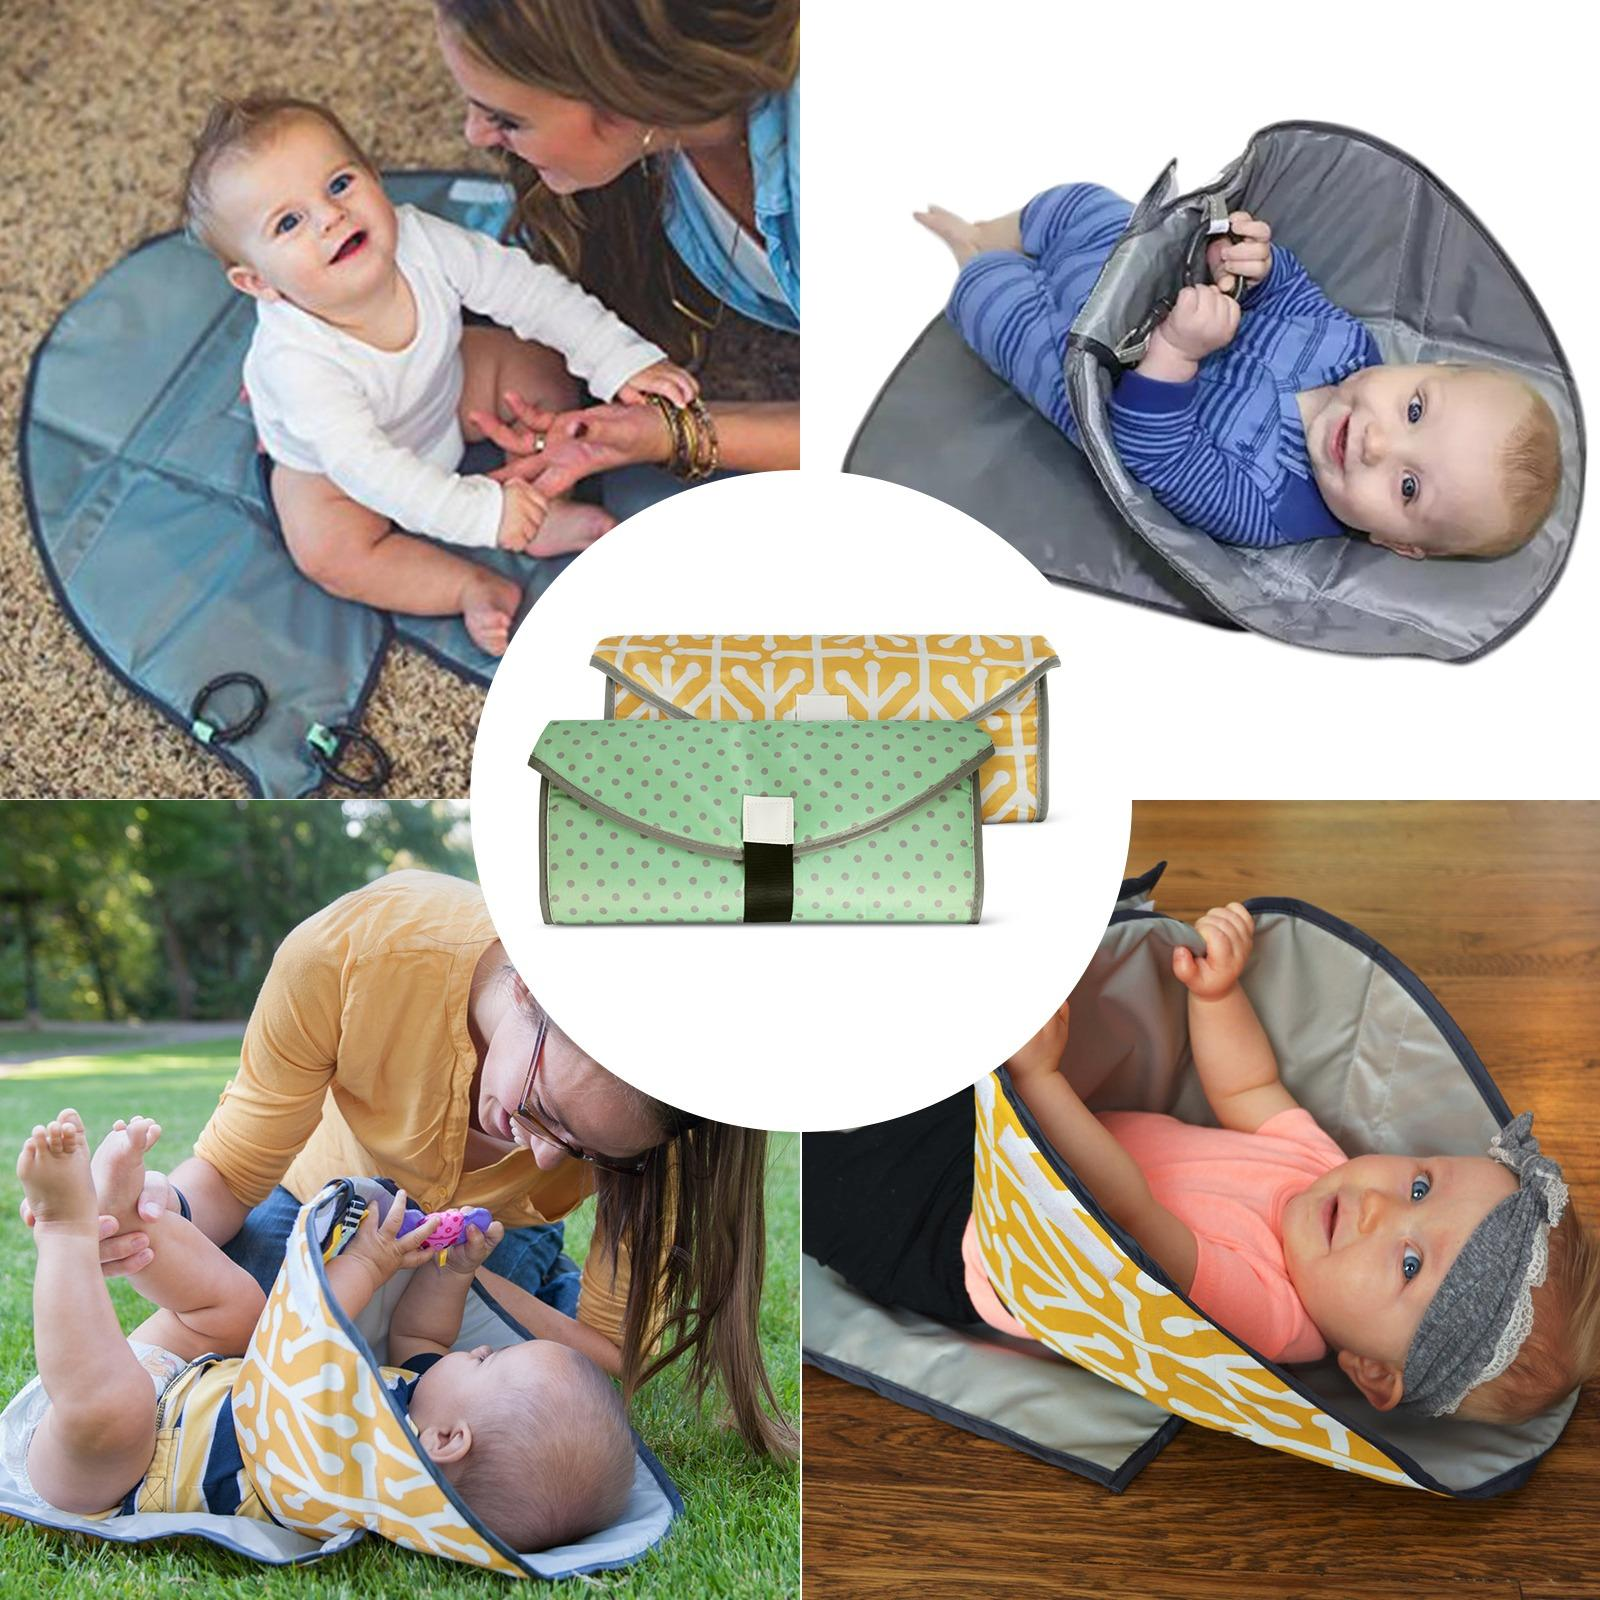 Portable Waterproof Baby Clean Hands Changing Pad 3 In 1 Diaper Clutch Pad For Infants Babies And Toddlers Deal